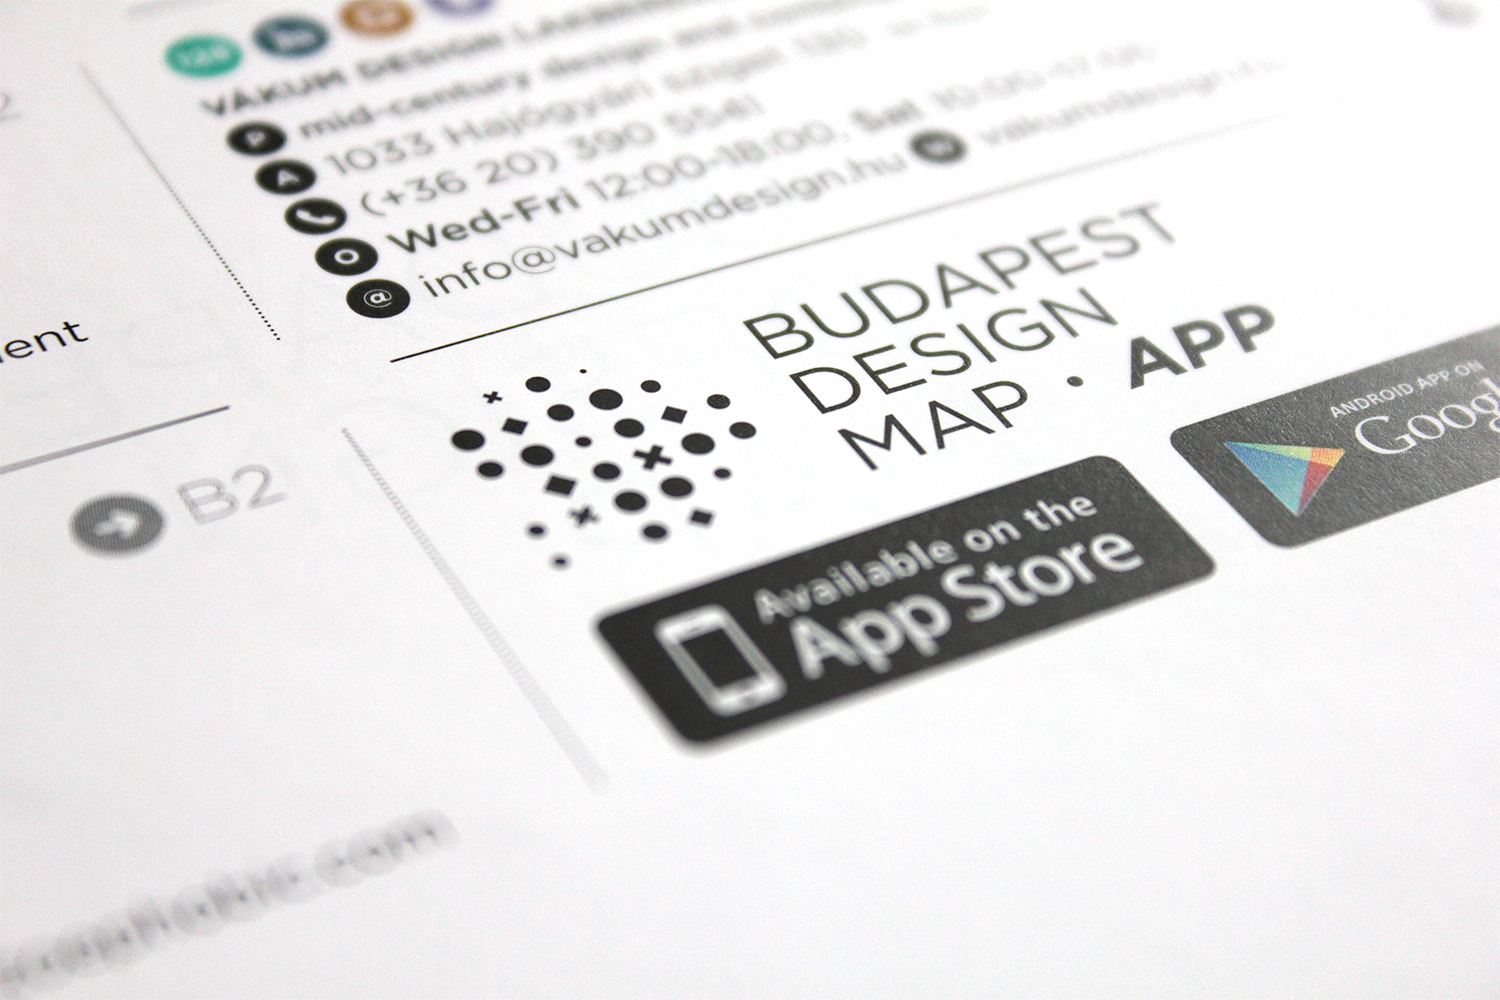 Budapest Design Map, 2013 - 1 by José Simon